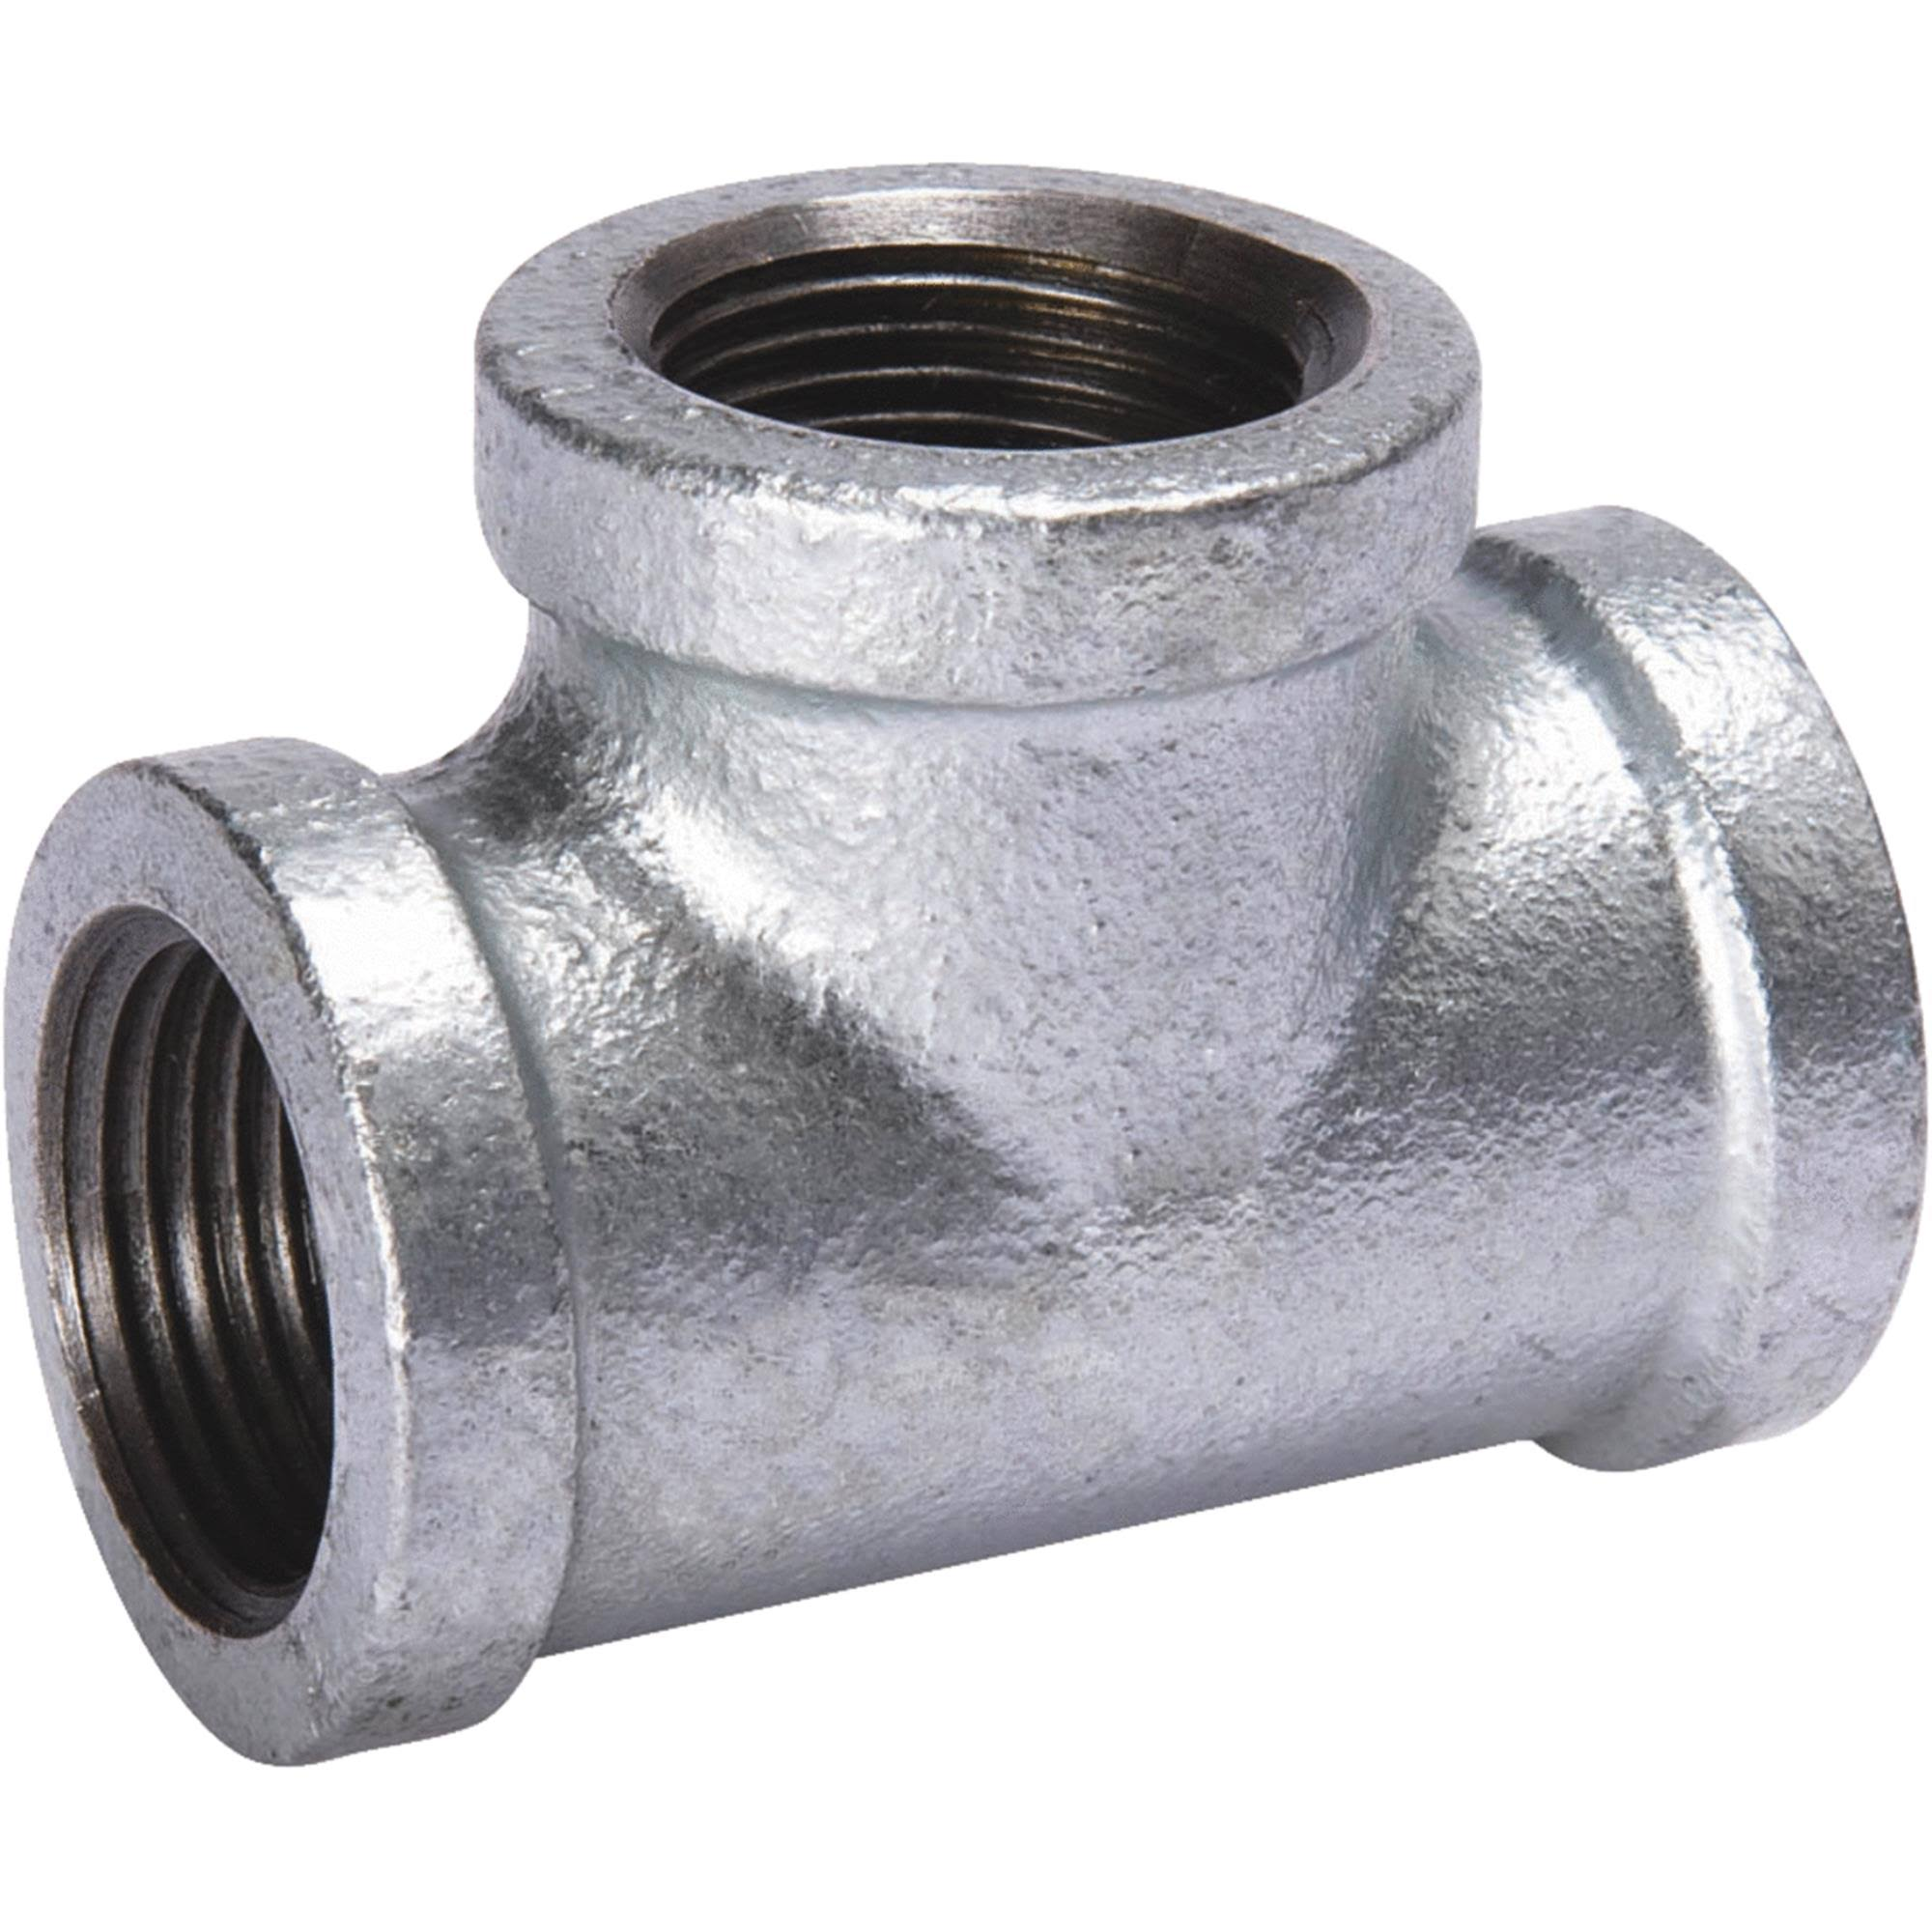 B and K FIP Malleable Iron Tee Pipe - Galvanized, 1/4""